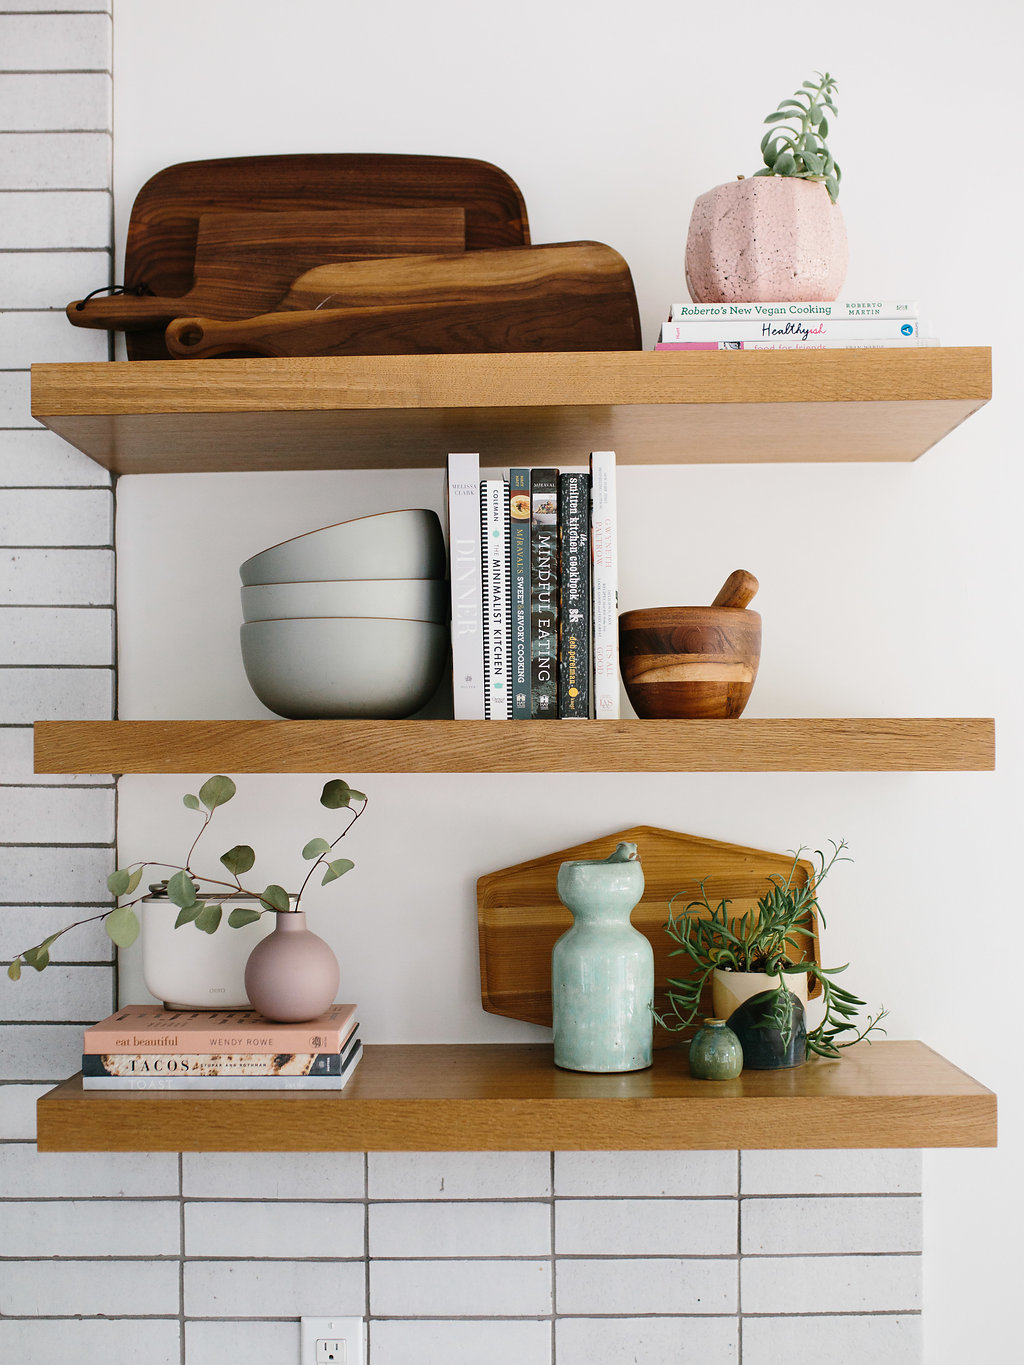 How To Style Kitchen Shelves - The Effortless Chic